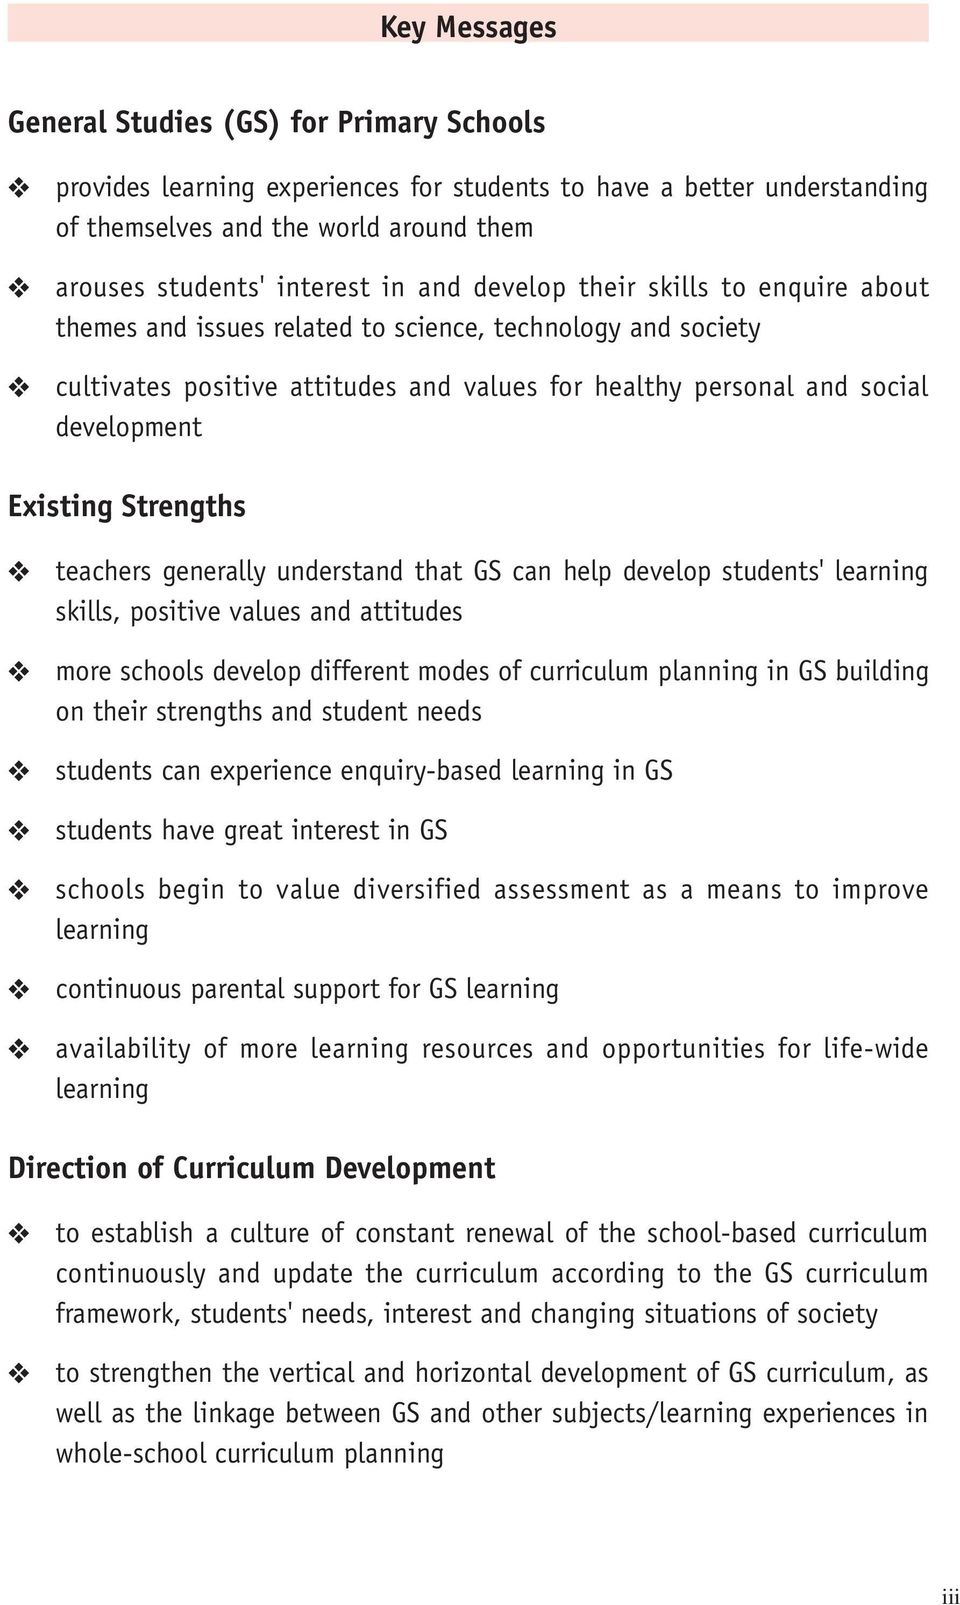 Strengths teachers generally understand that GS can help develop students' learning skills, positive values and attitudes more schools develop different modes of curriculum planning in GS building on